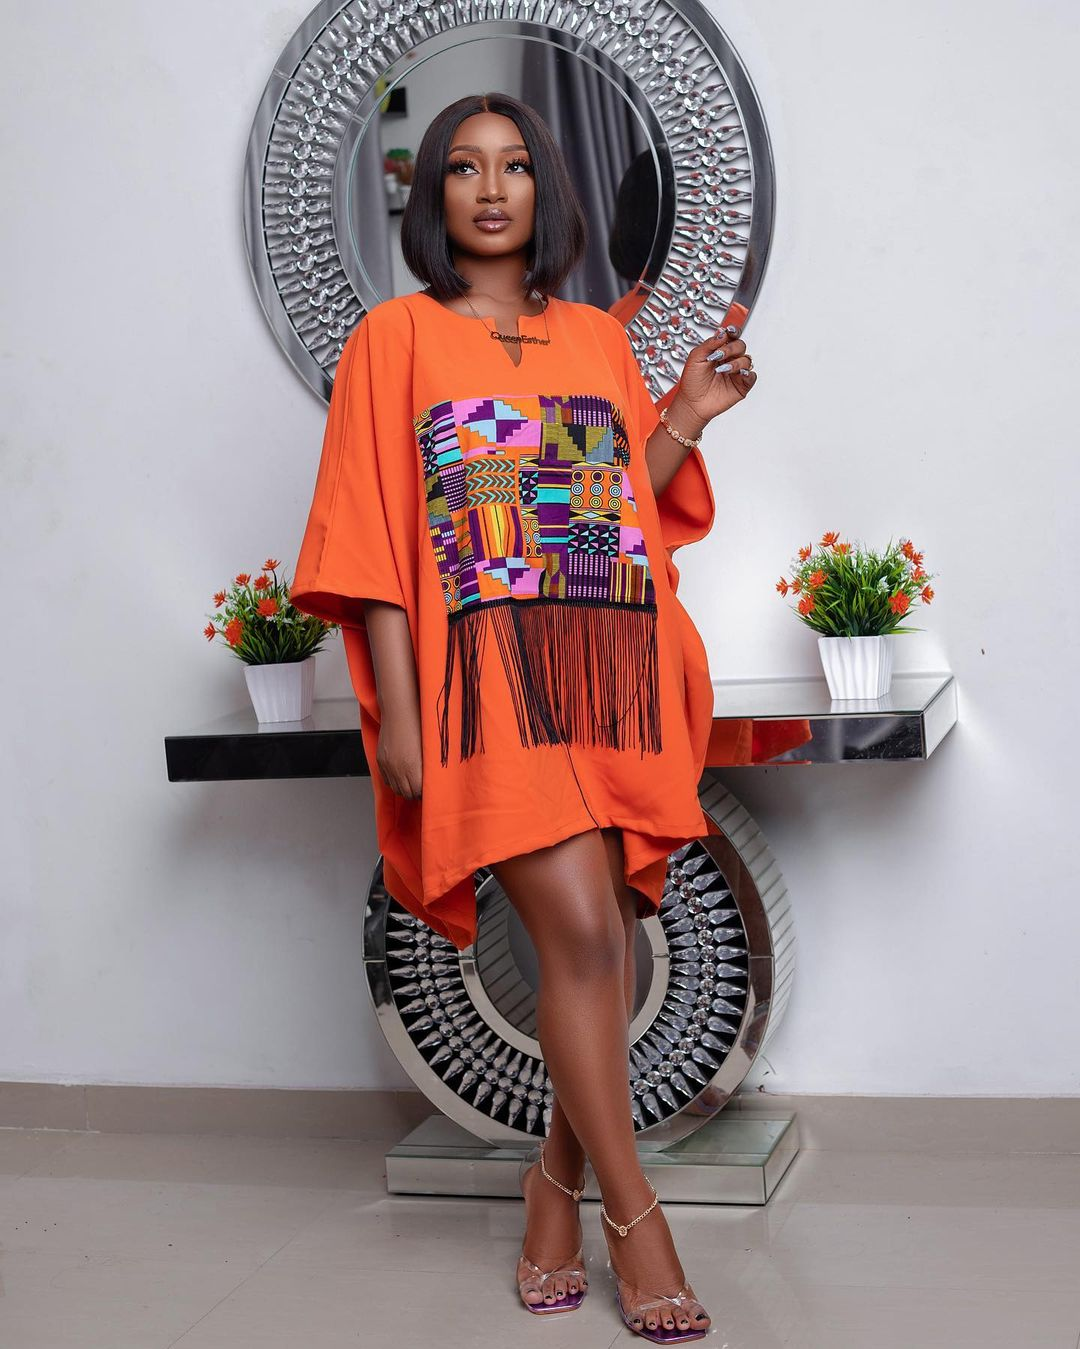 Esther Biade Keeps It Casual And Confident